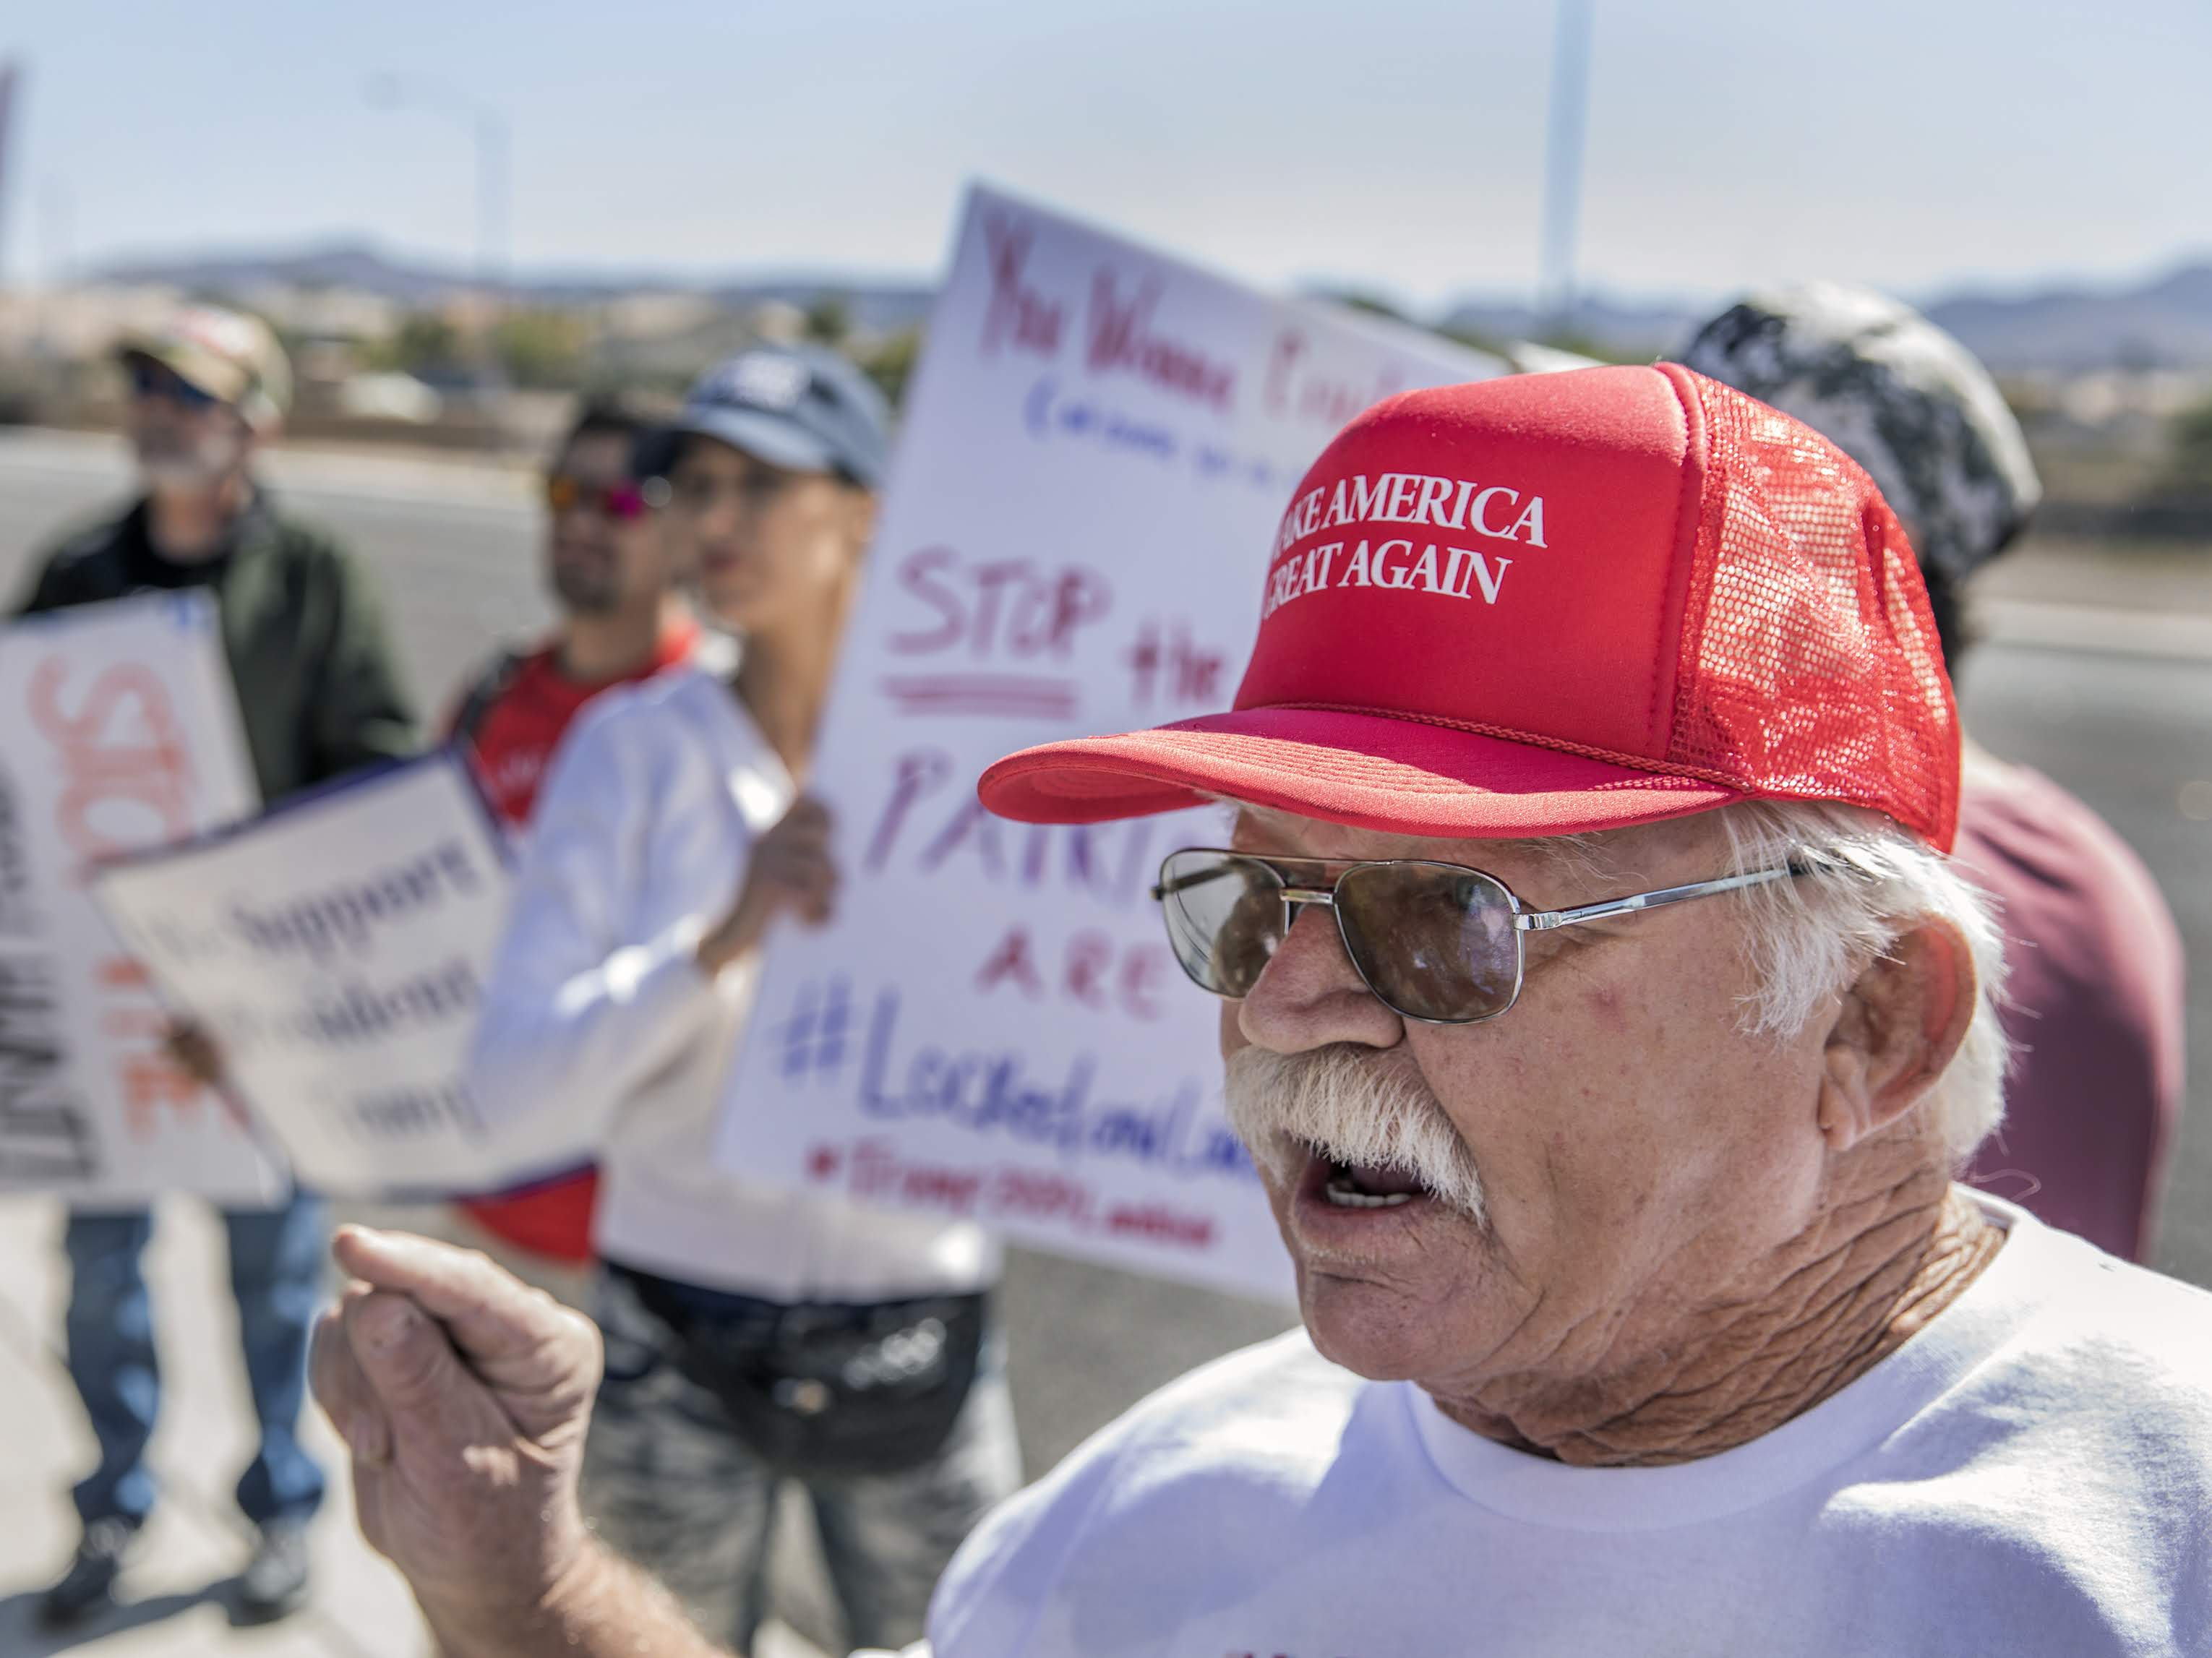 Trump supporters protest on street